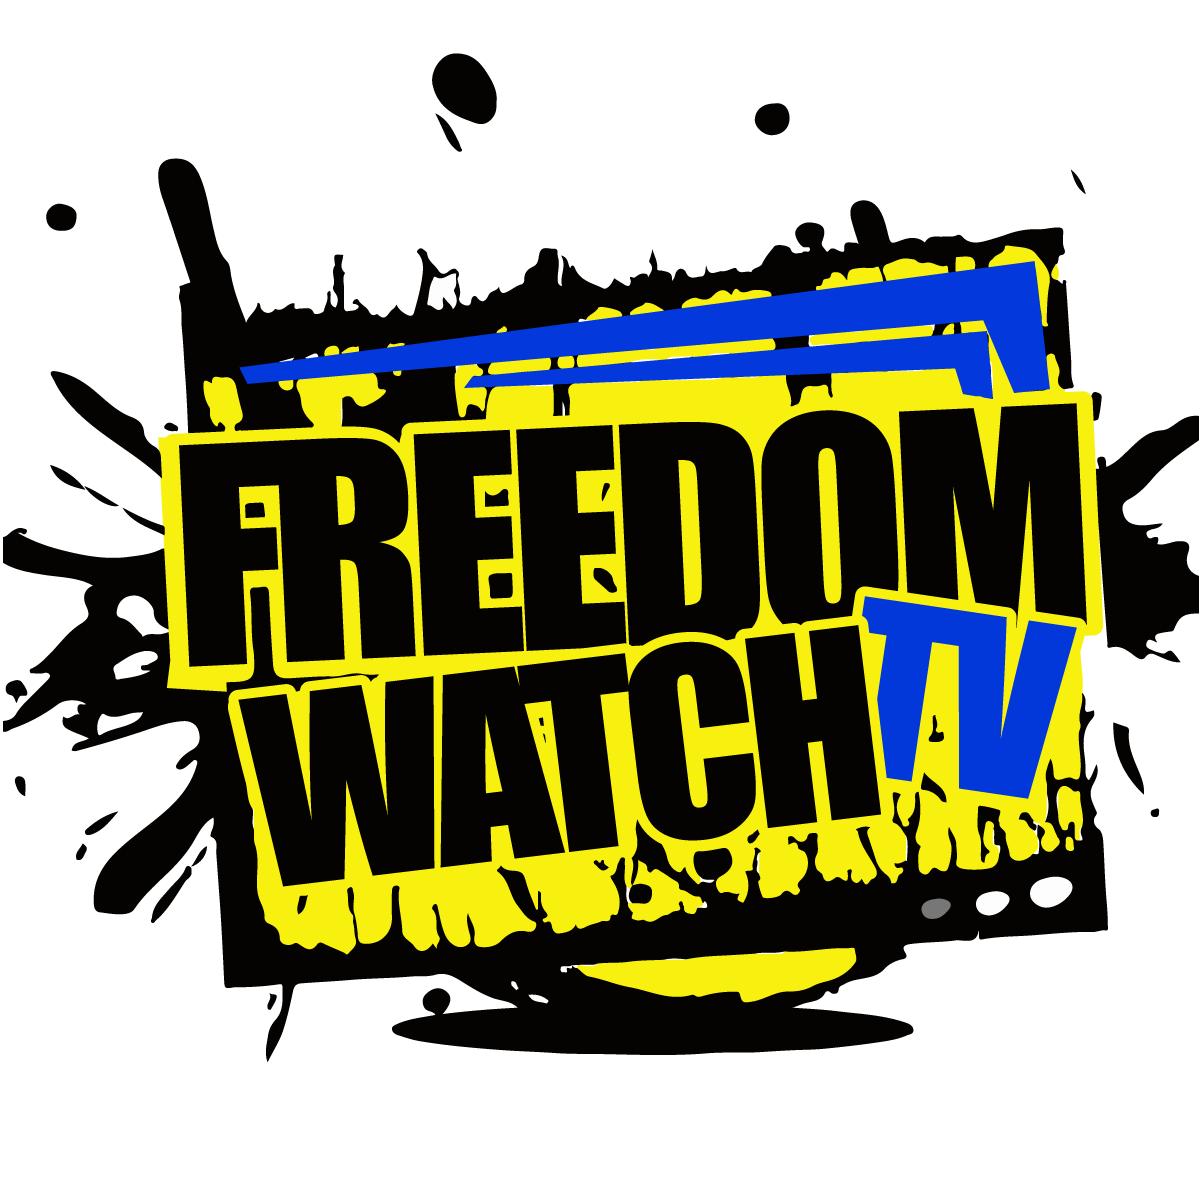 Freedom Watch TV Global